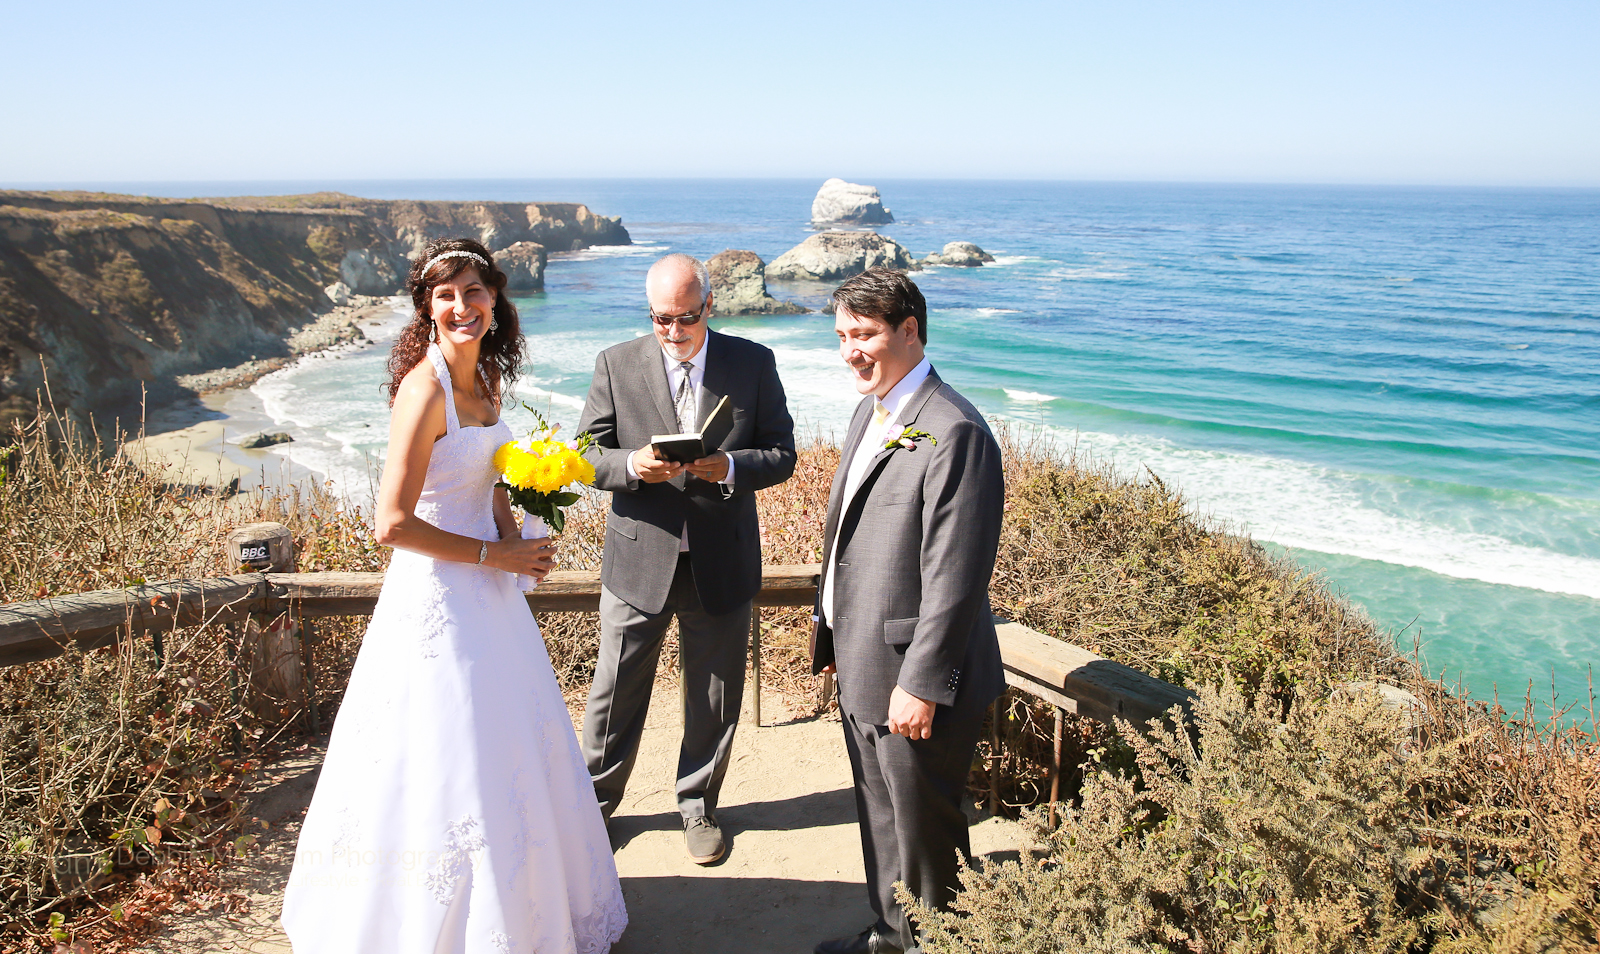 Big Sur Wedding - destination-wedding_small-wedding_big-sur_california-coast_ocean-view_gorda_wedding-photographer_debbie-markham-4261